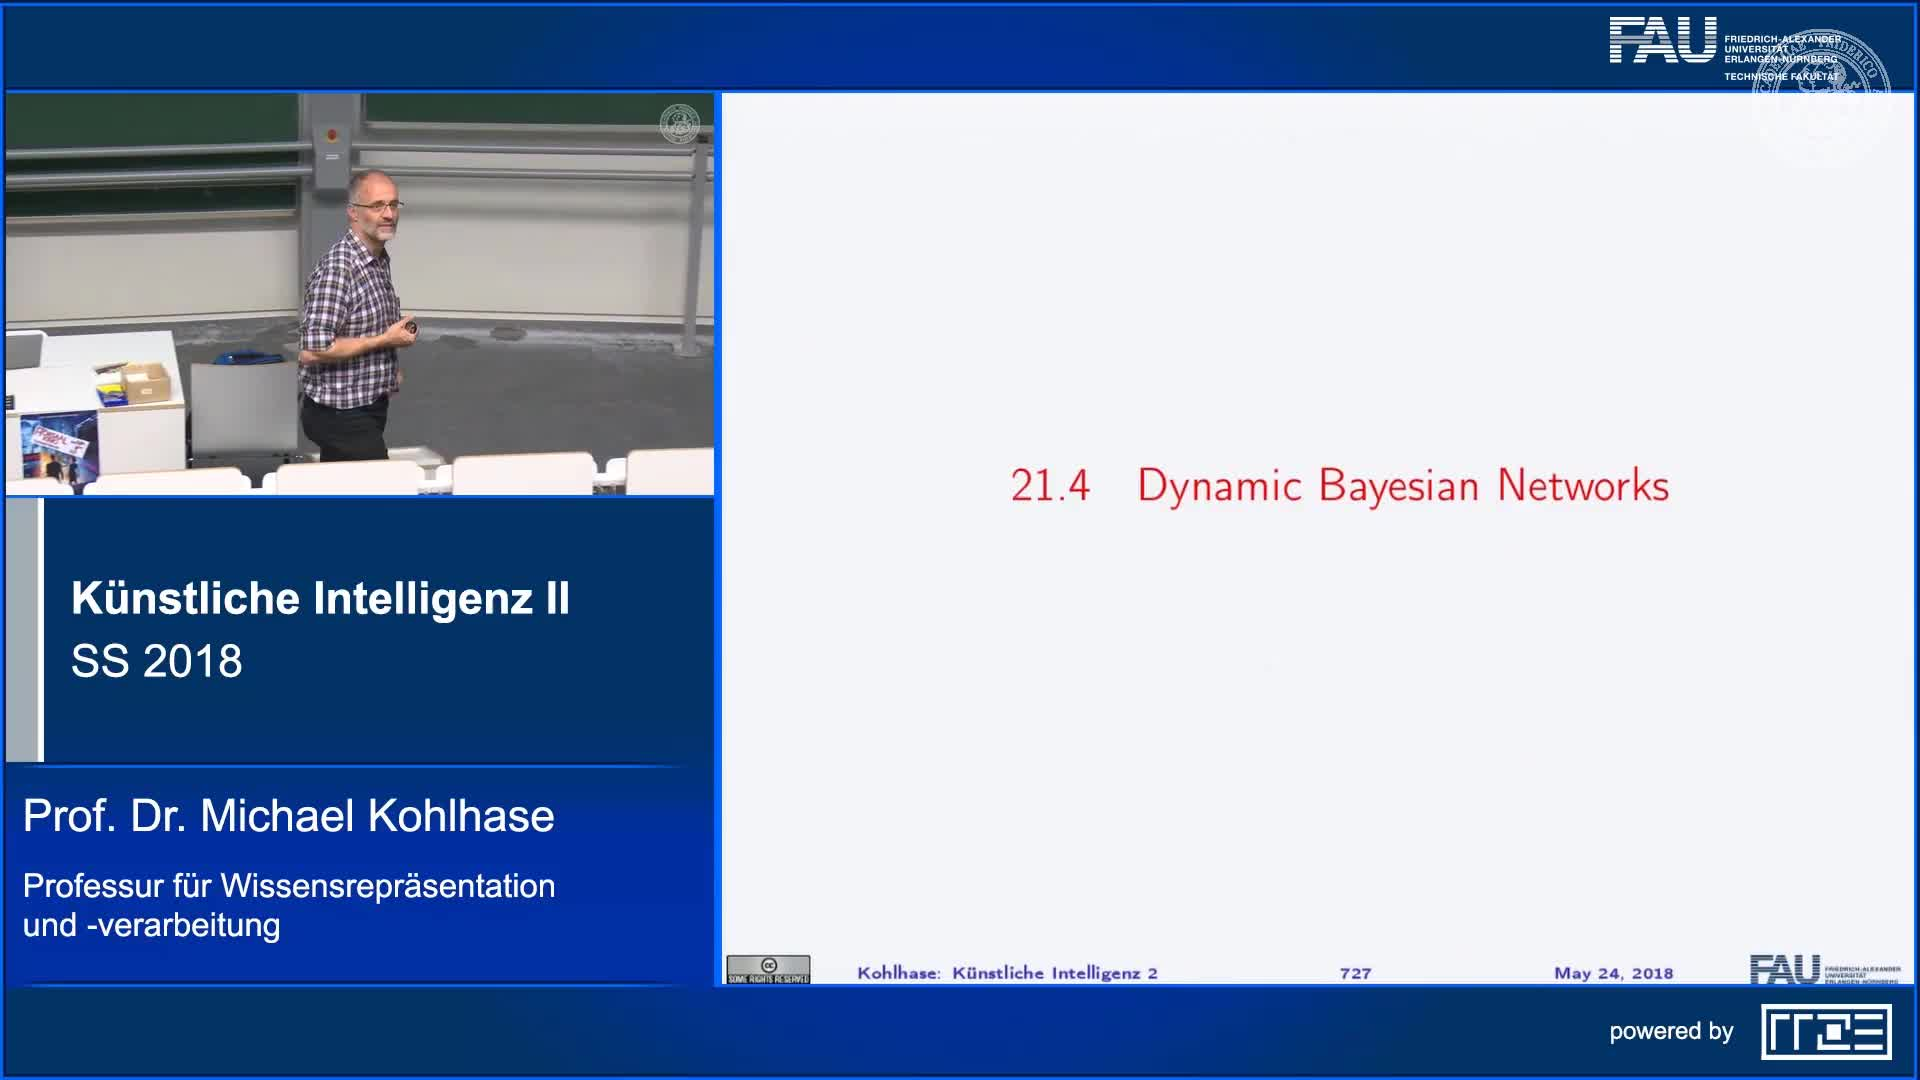 23.4. Dynamic Bayesian Networks preview image